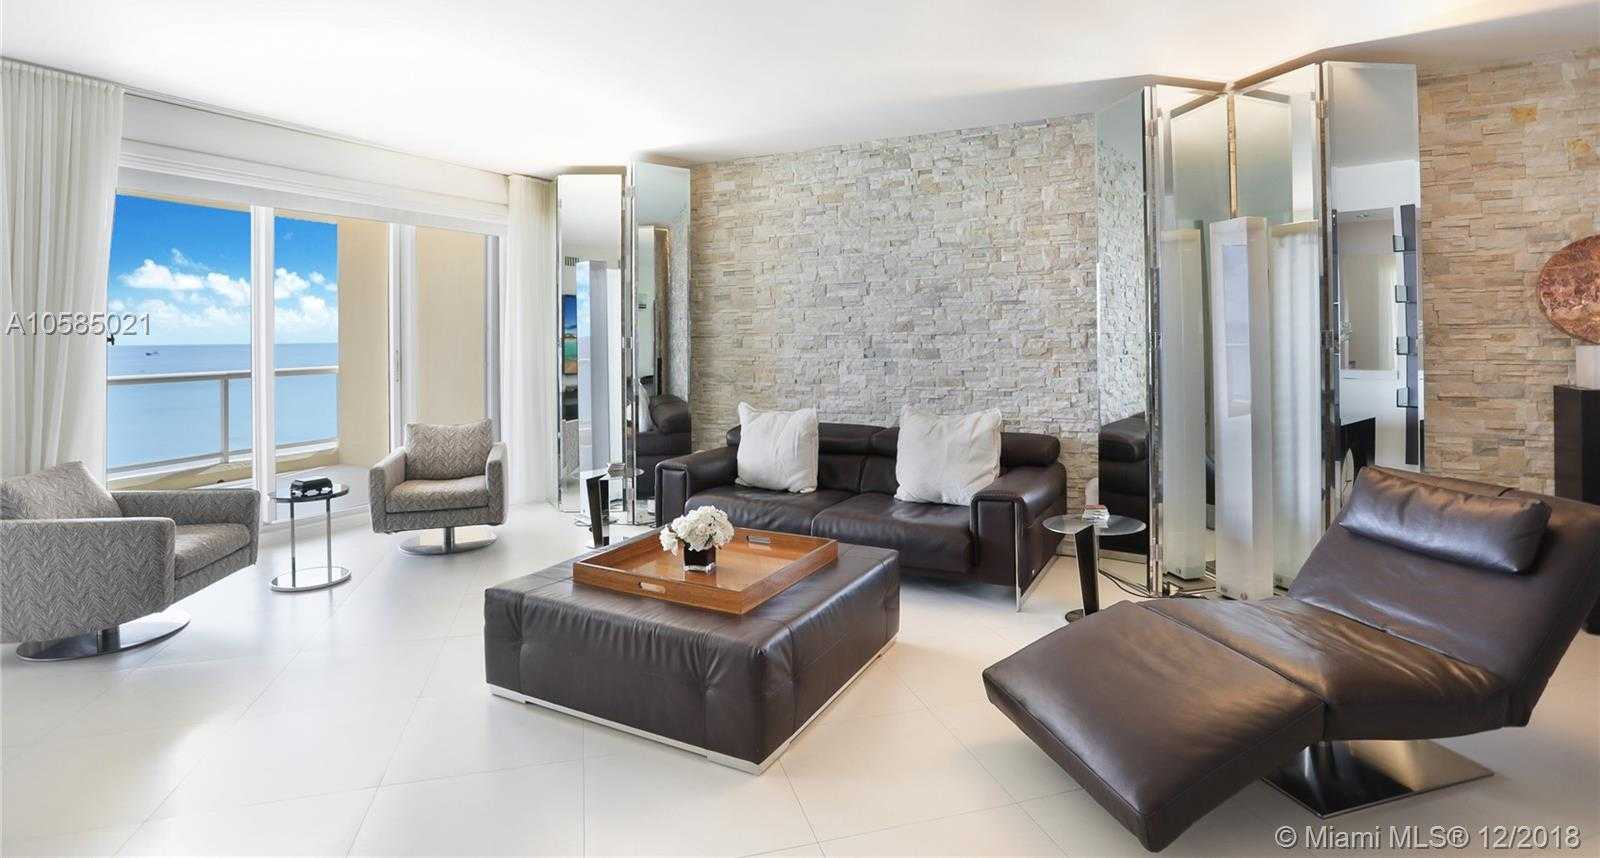 $1,295,000 - 3Br/3Ba -  for Sale in Fort Lauderdale